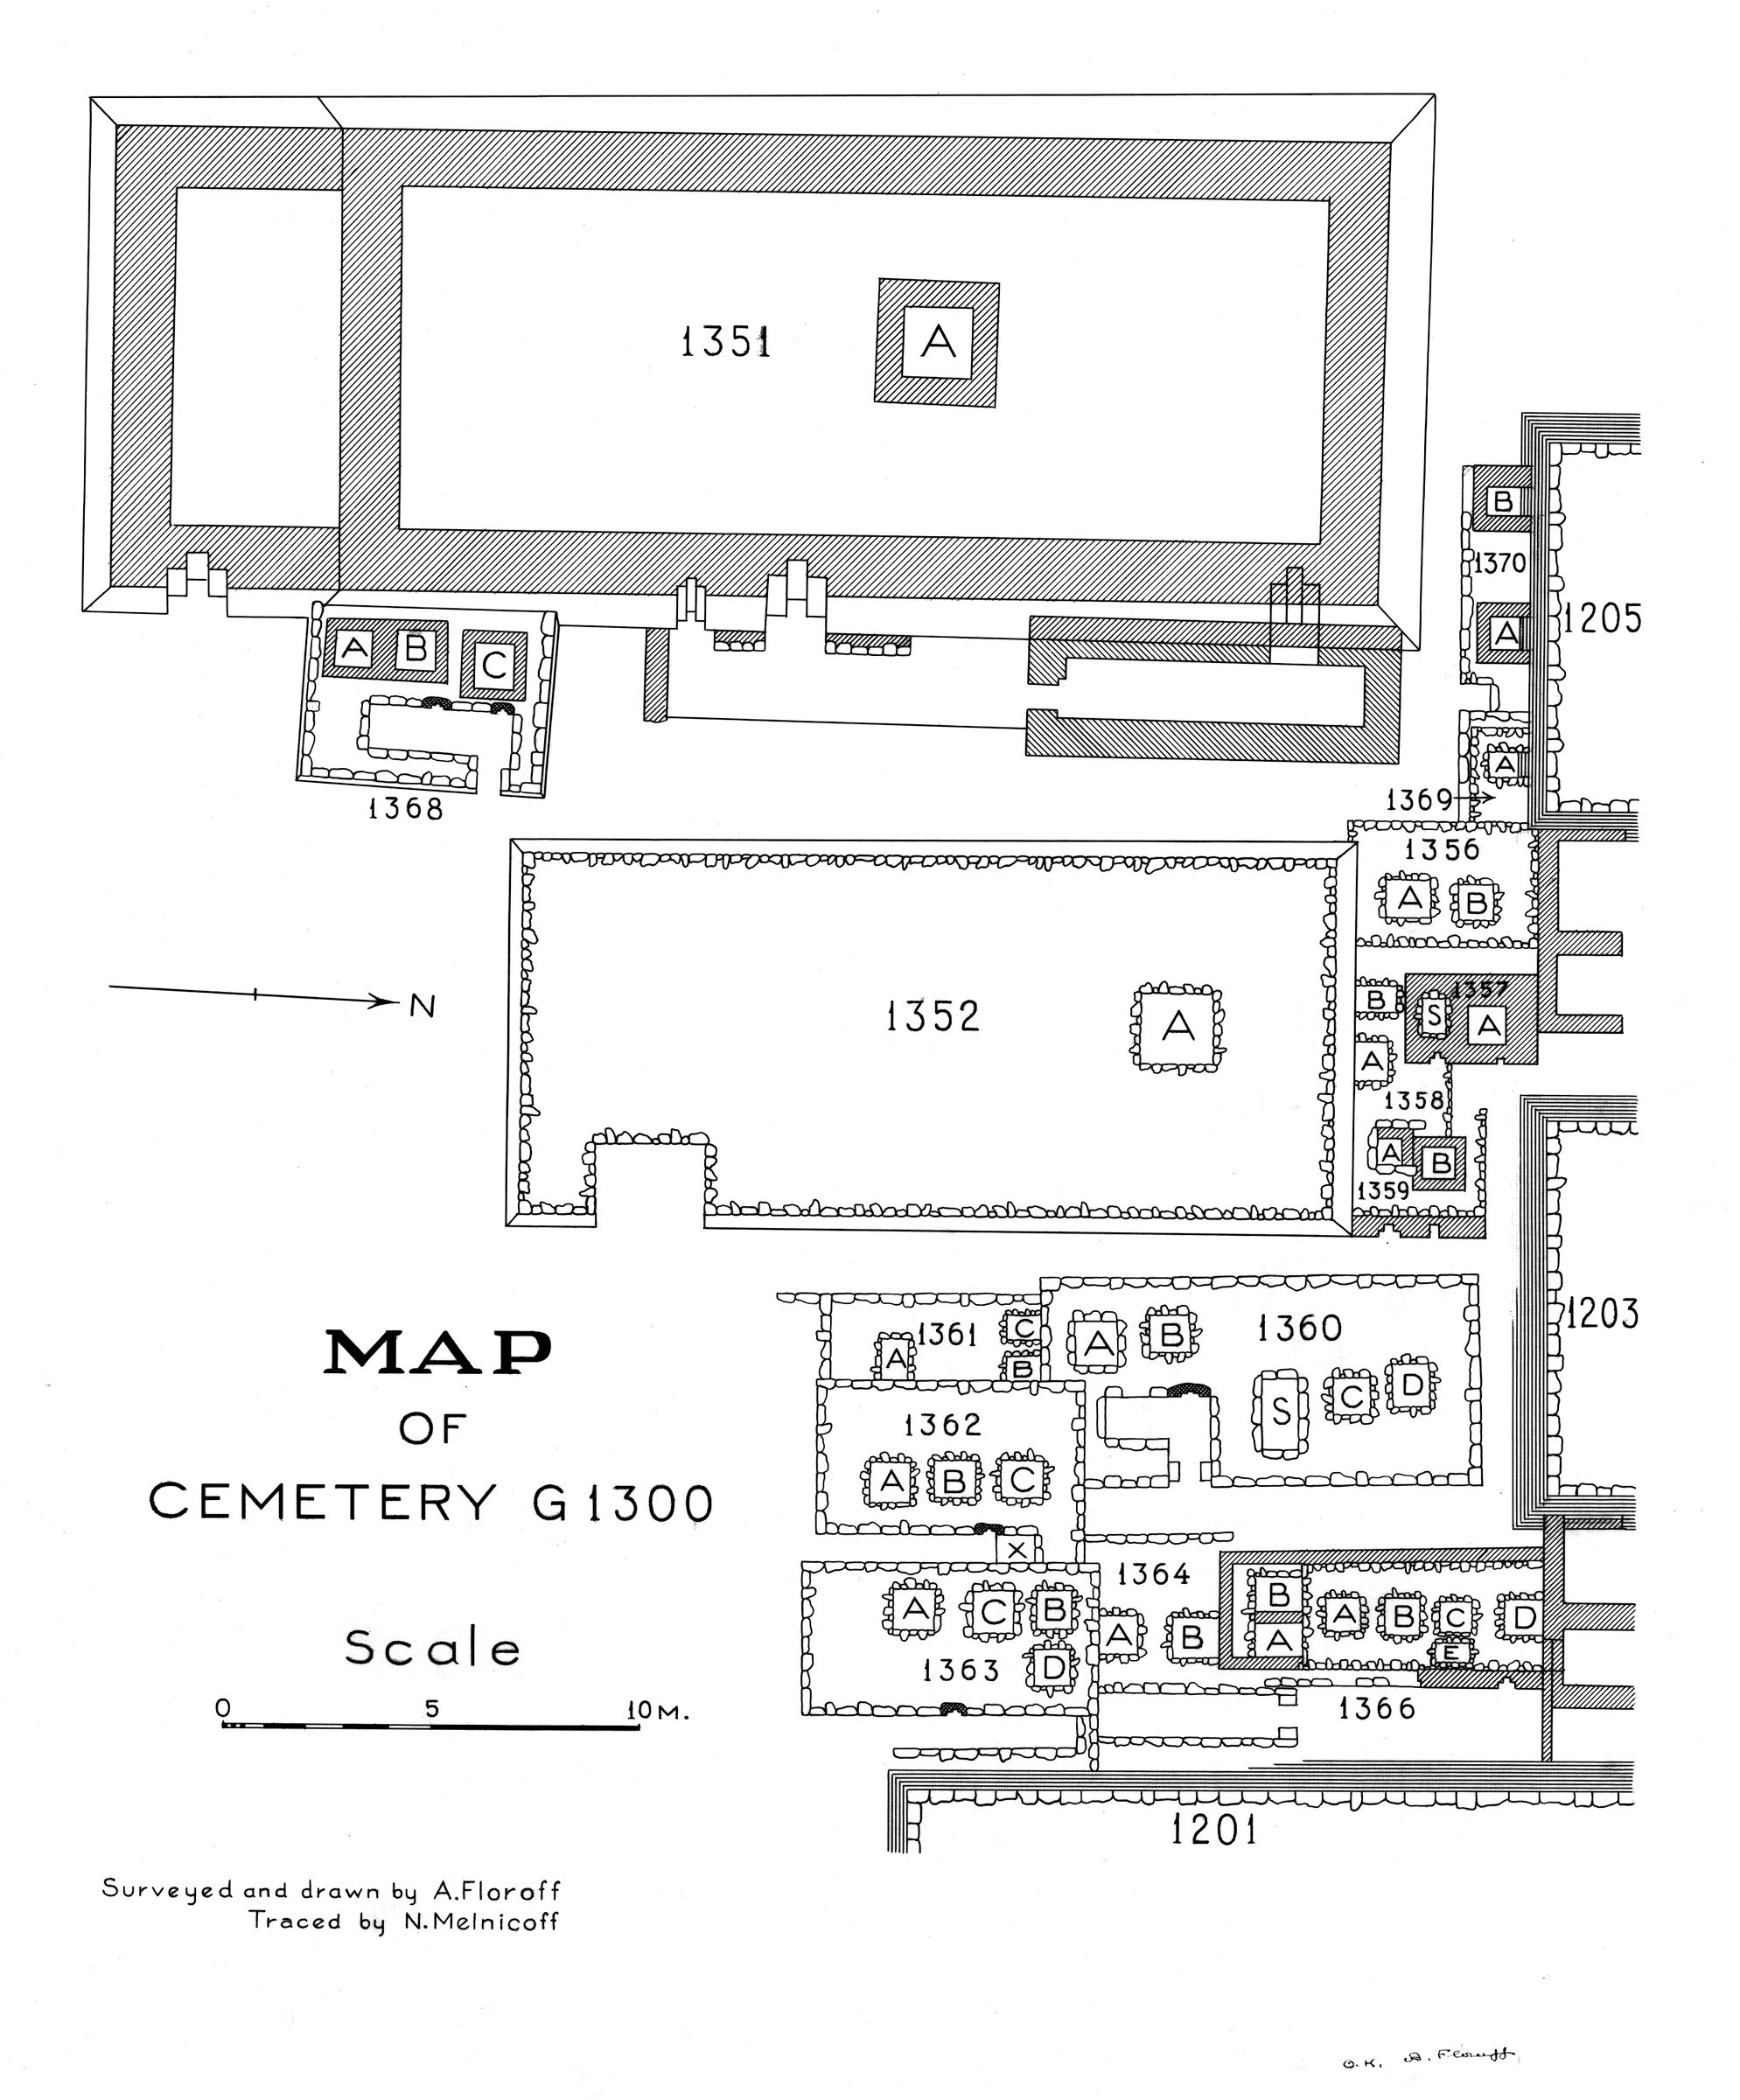 Maps and plans: Plan of cemetery G 1300 (SW portion), G 1351 - 1370